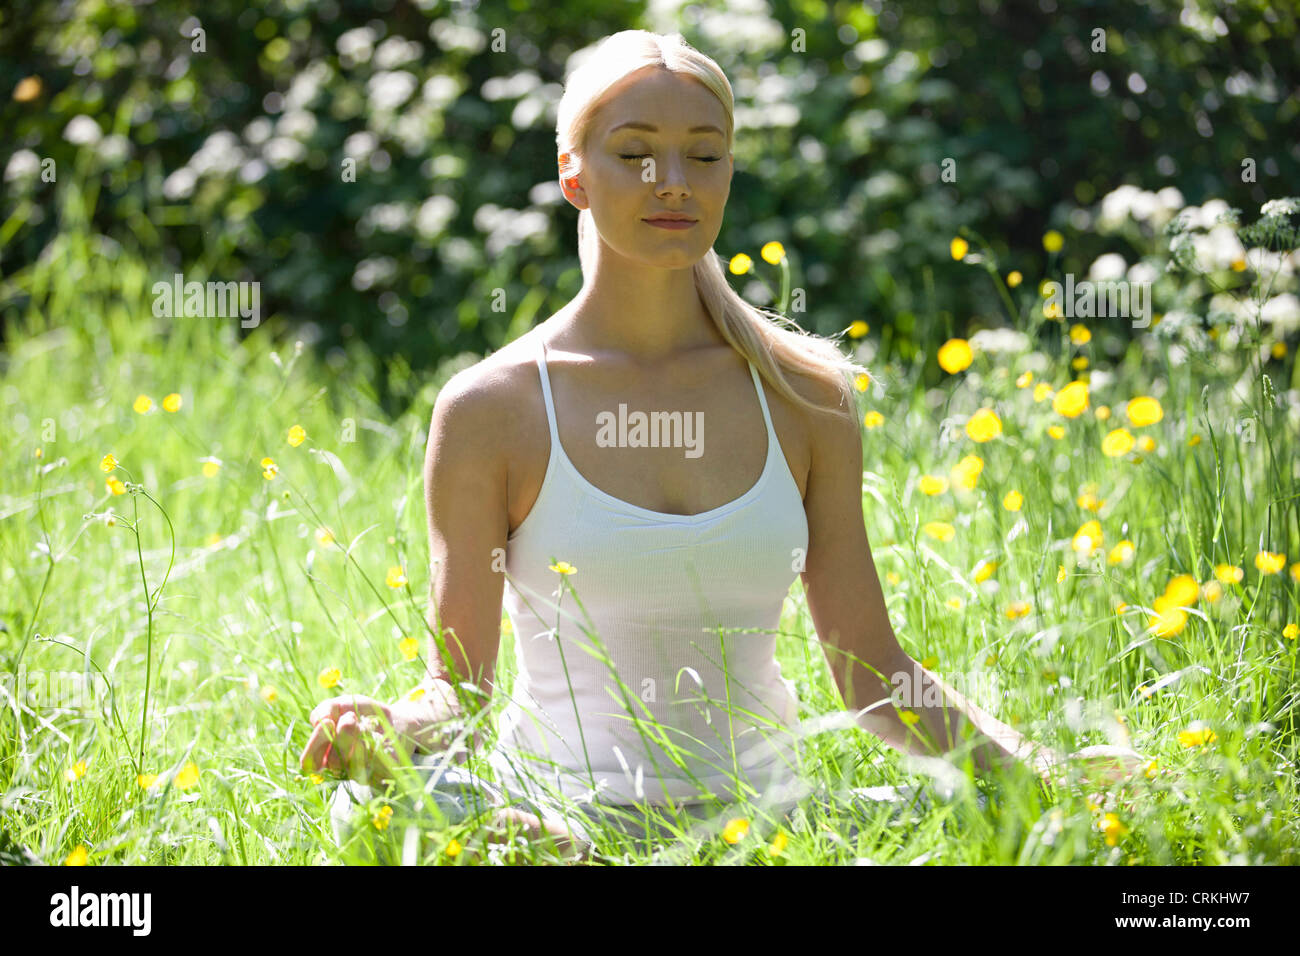 A young woman meditating outside, eyes closed - Stock Image